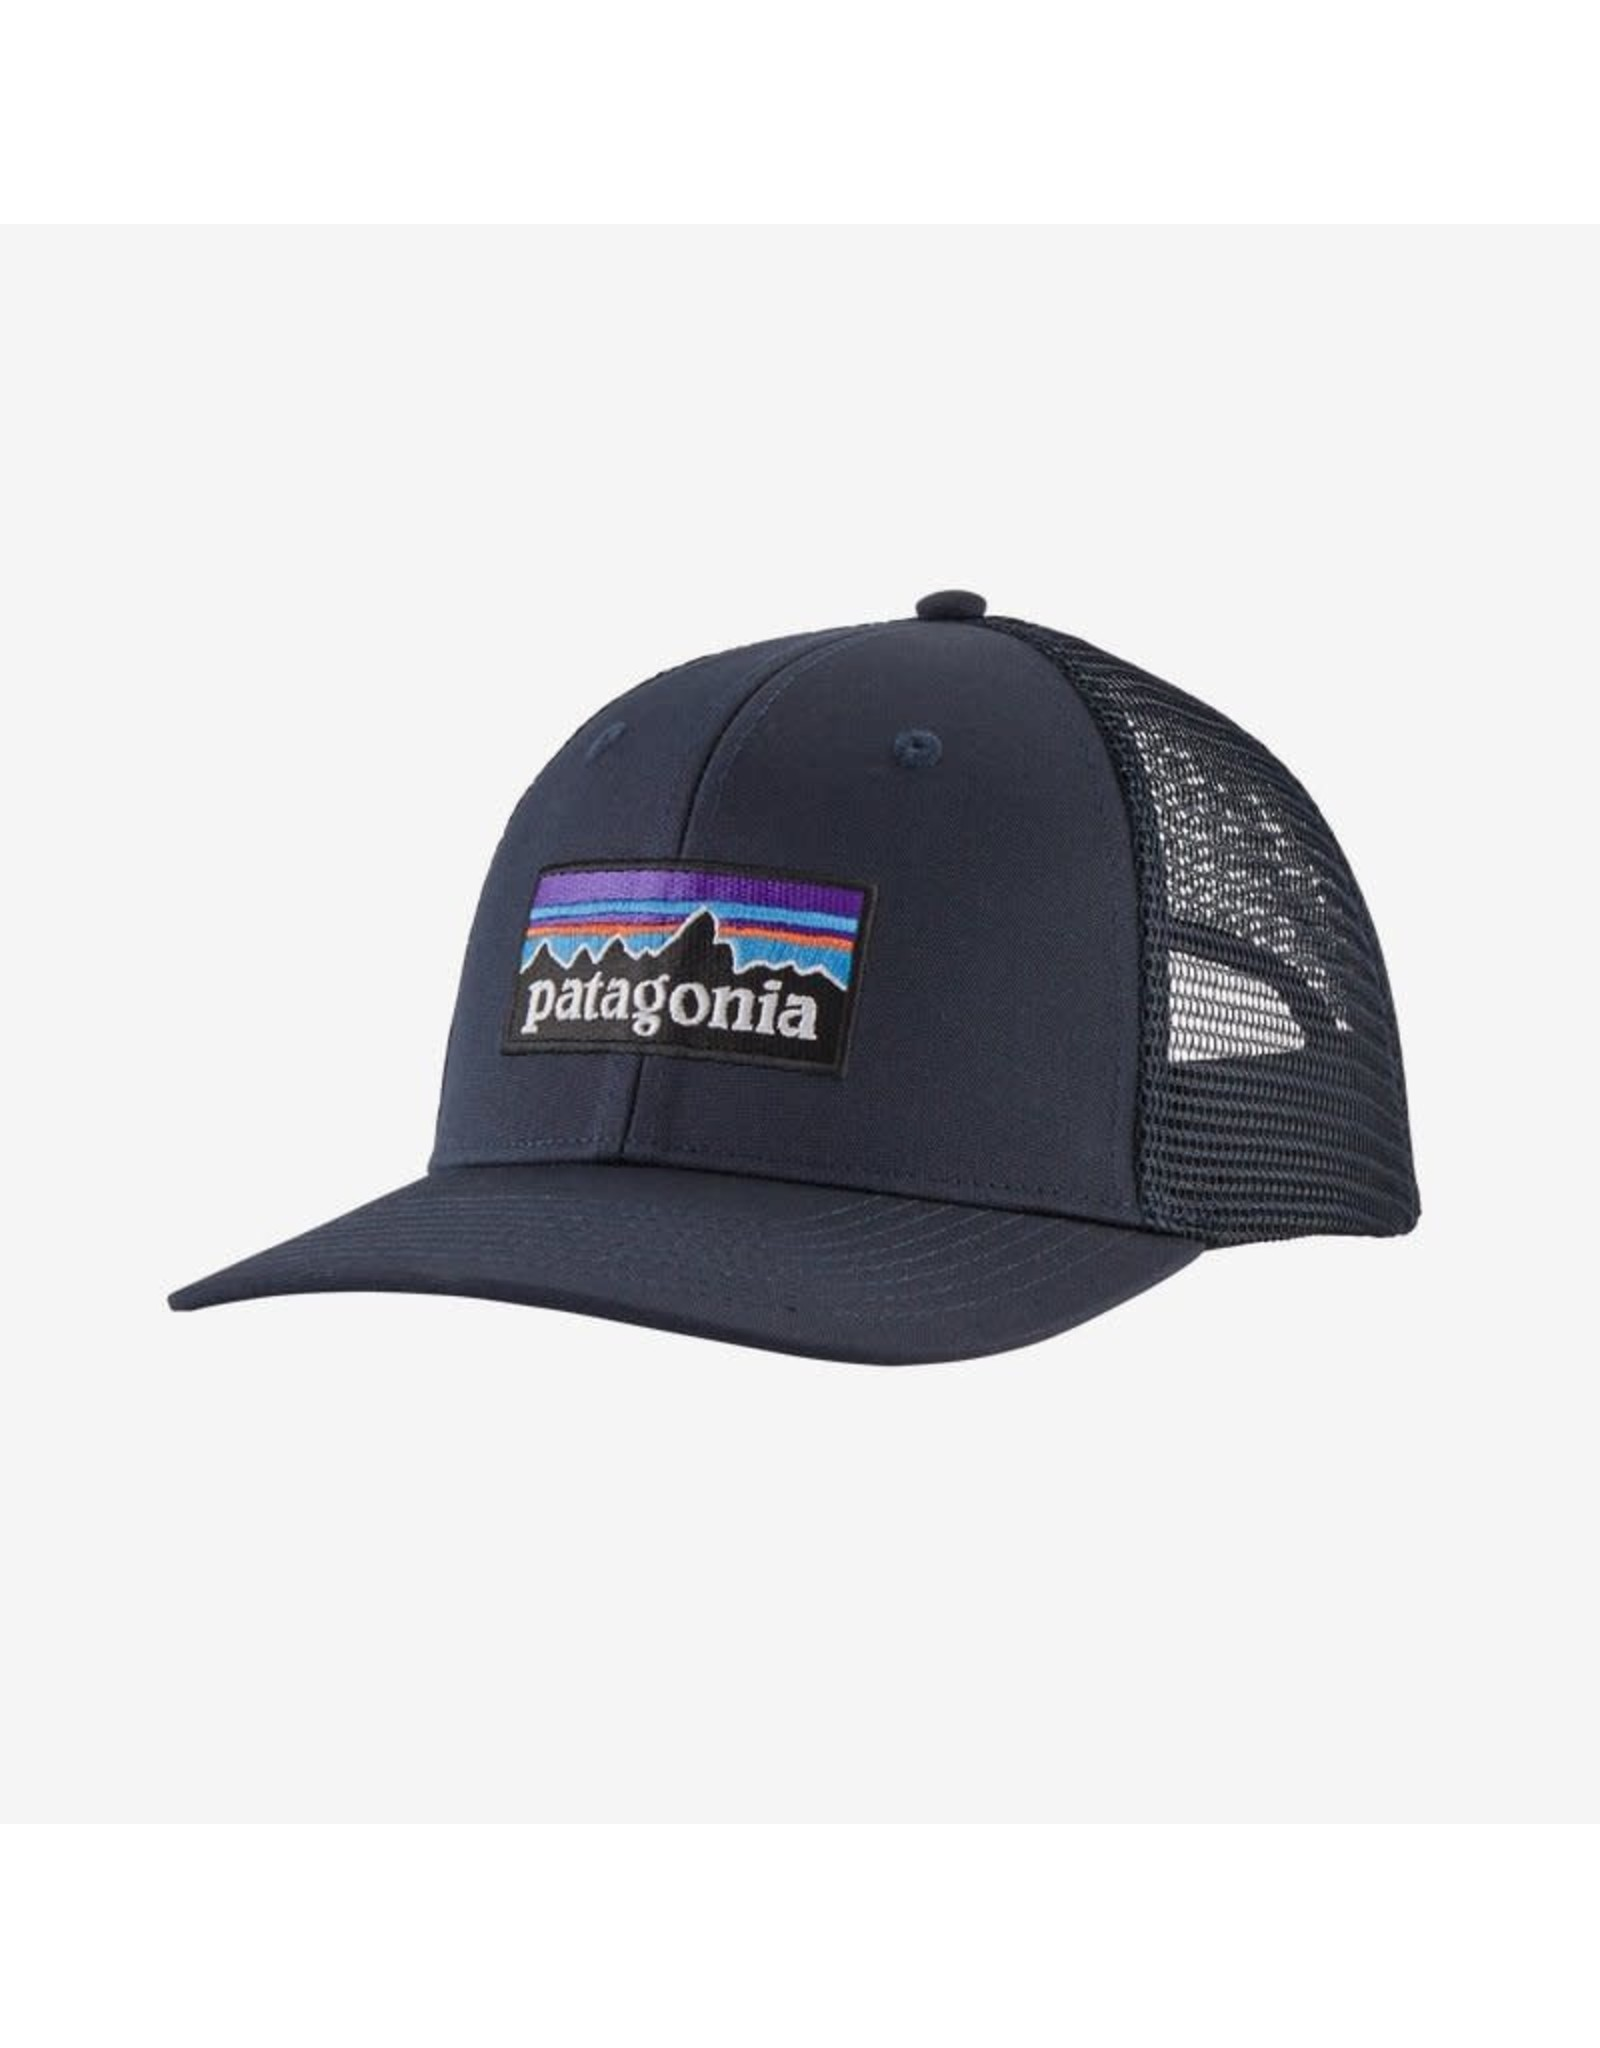 Patagonia Patagonia - Casquette homme p-6 logo lopro trucker navy blue